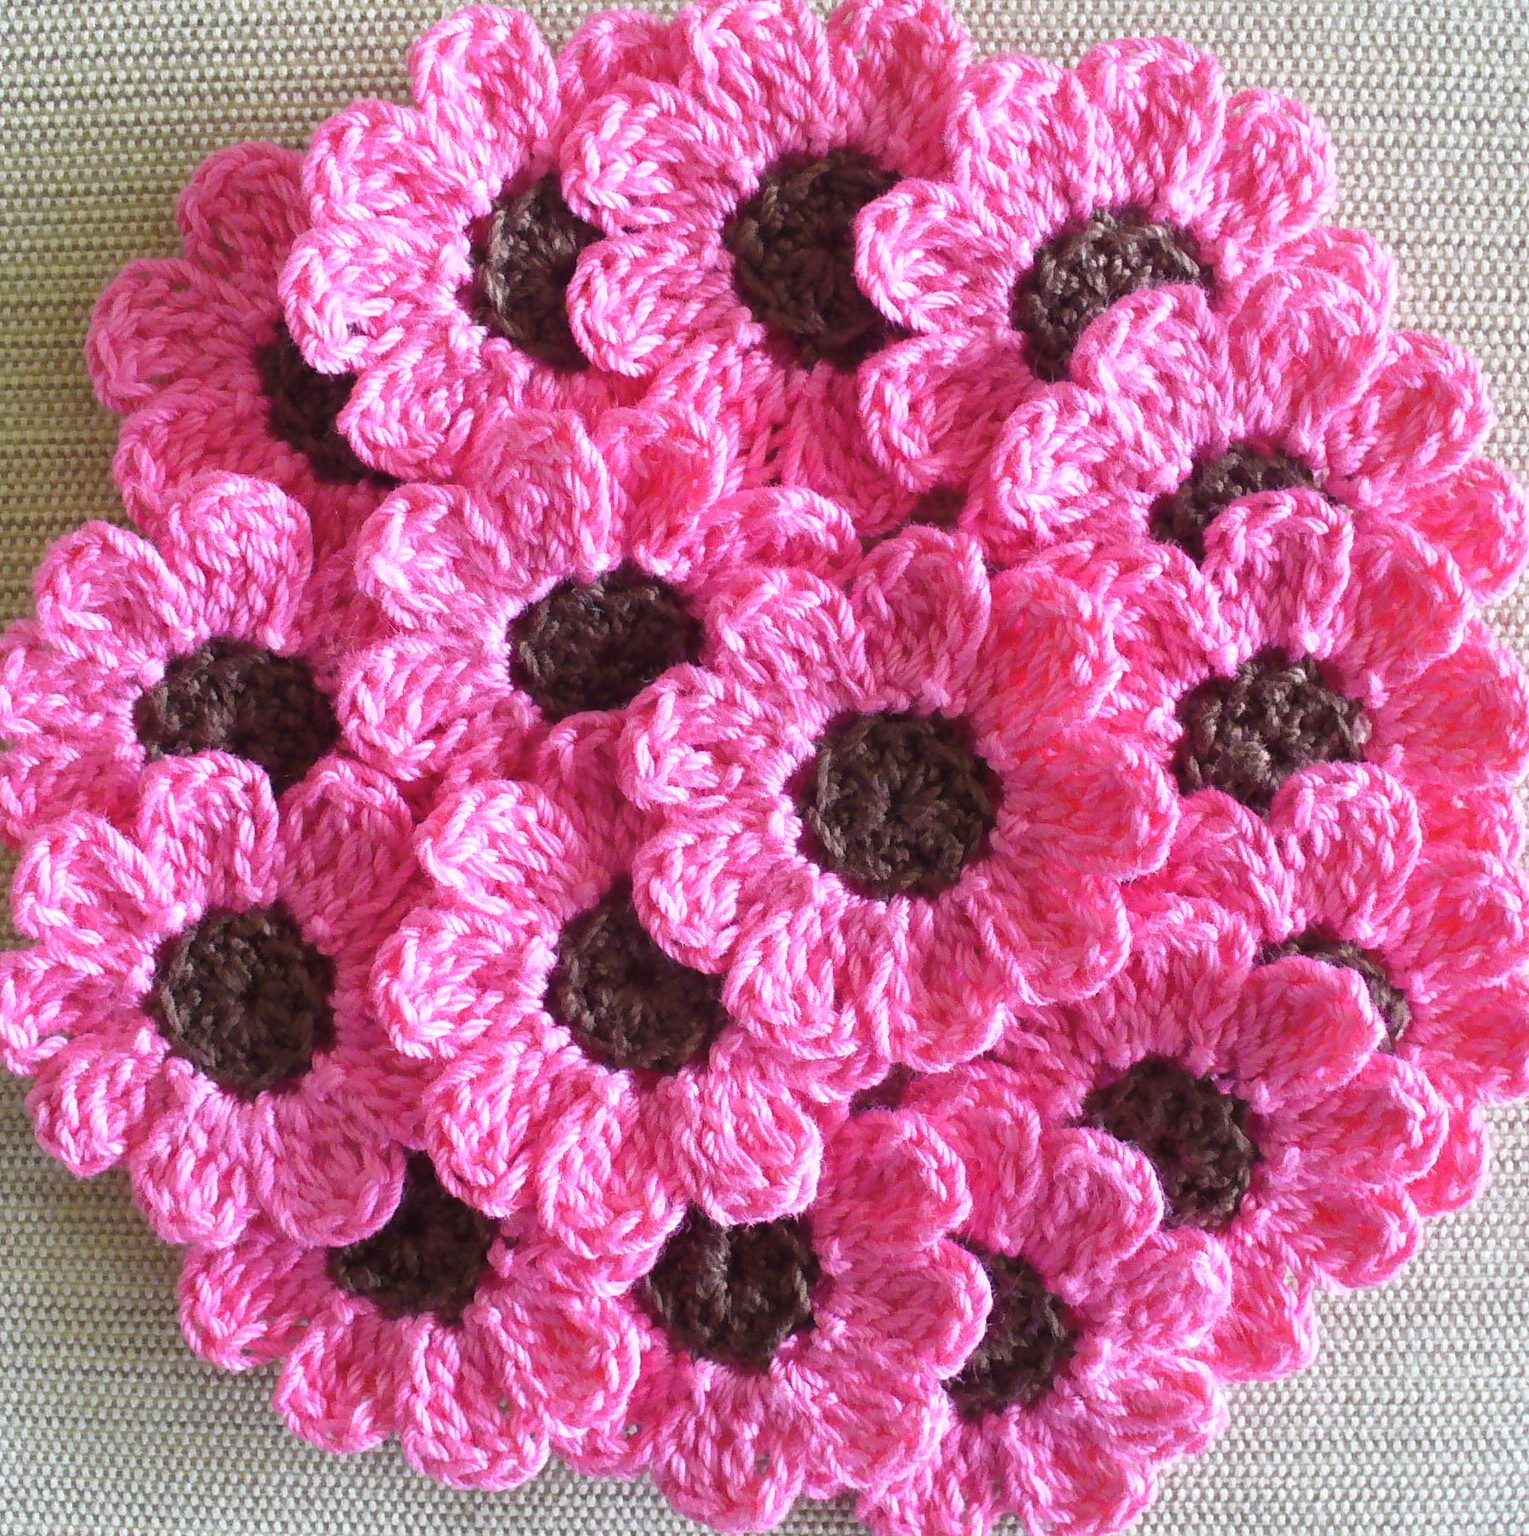 Pink Crochet Flowers, Daisies, 16 Small Handmade Appliques, Candy ...